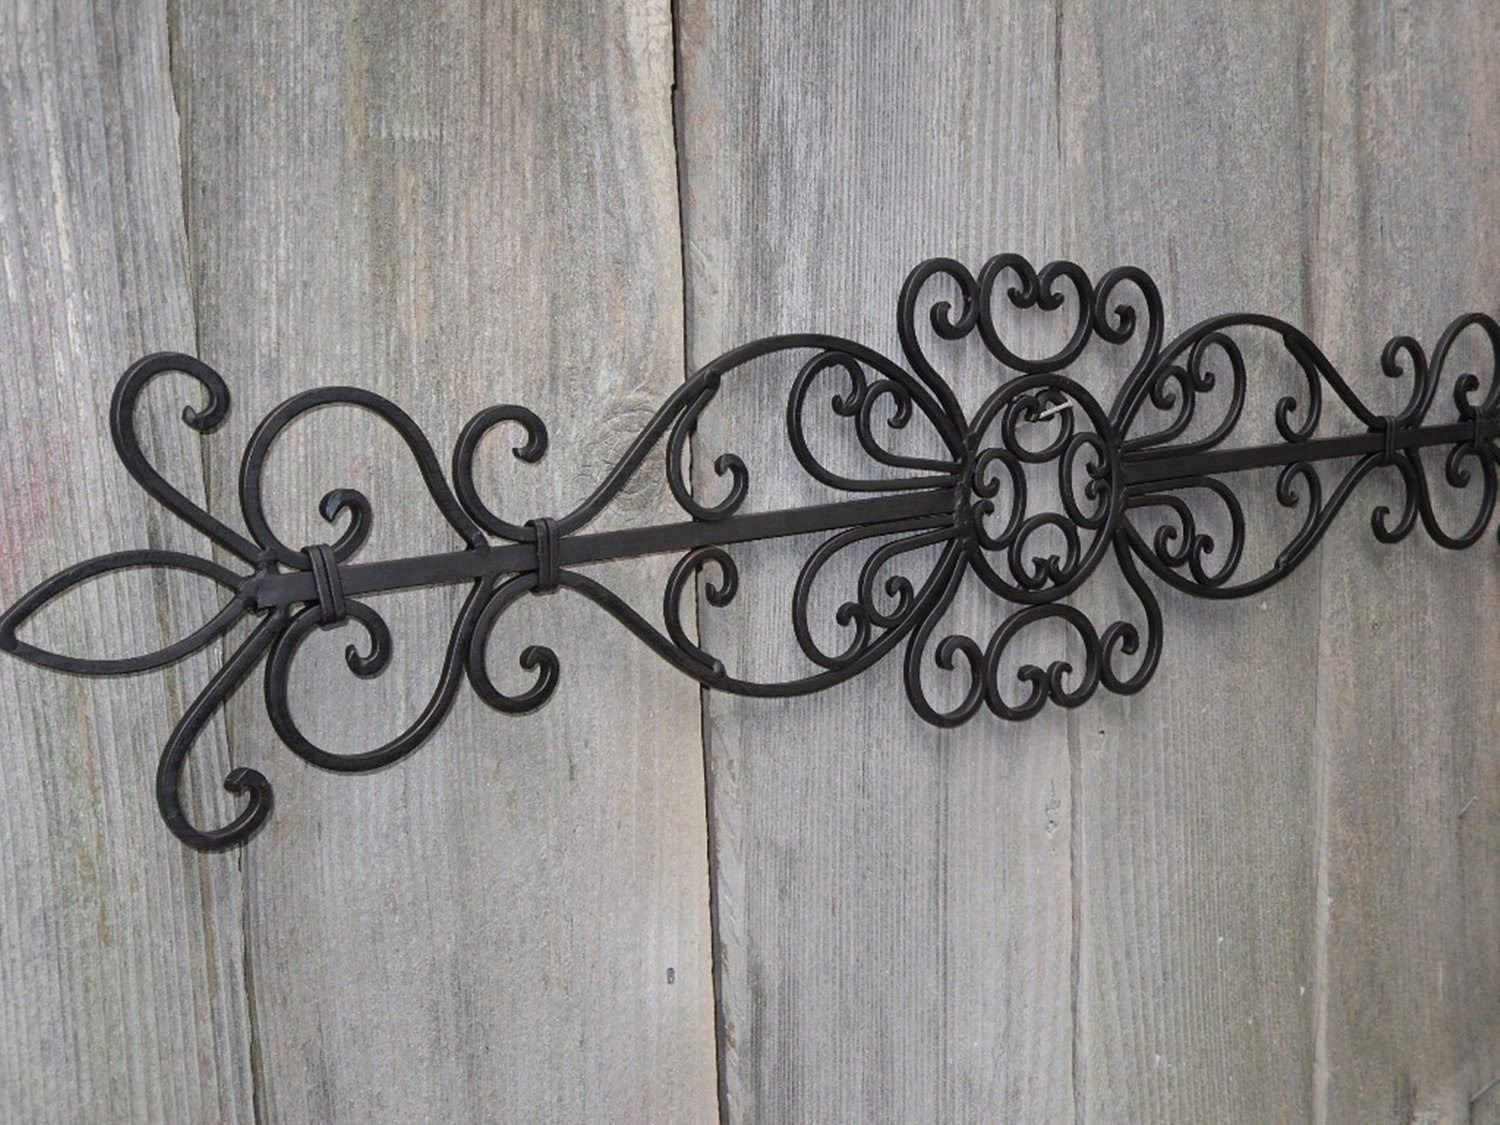 Best 25 wrought iron wall decor ideas on pinterest wrought iron best 25 wrought iron wall decor ideas on pinterest wrought iron decor rustic wood and rustic ironing boards amipublicfo Gallery